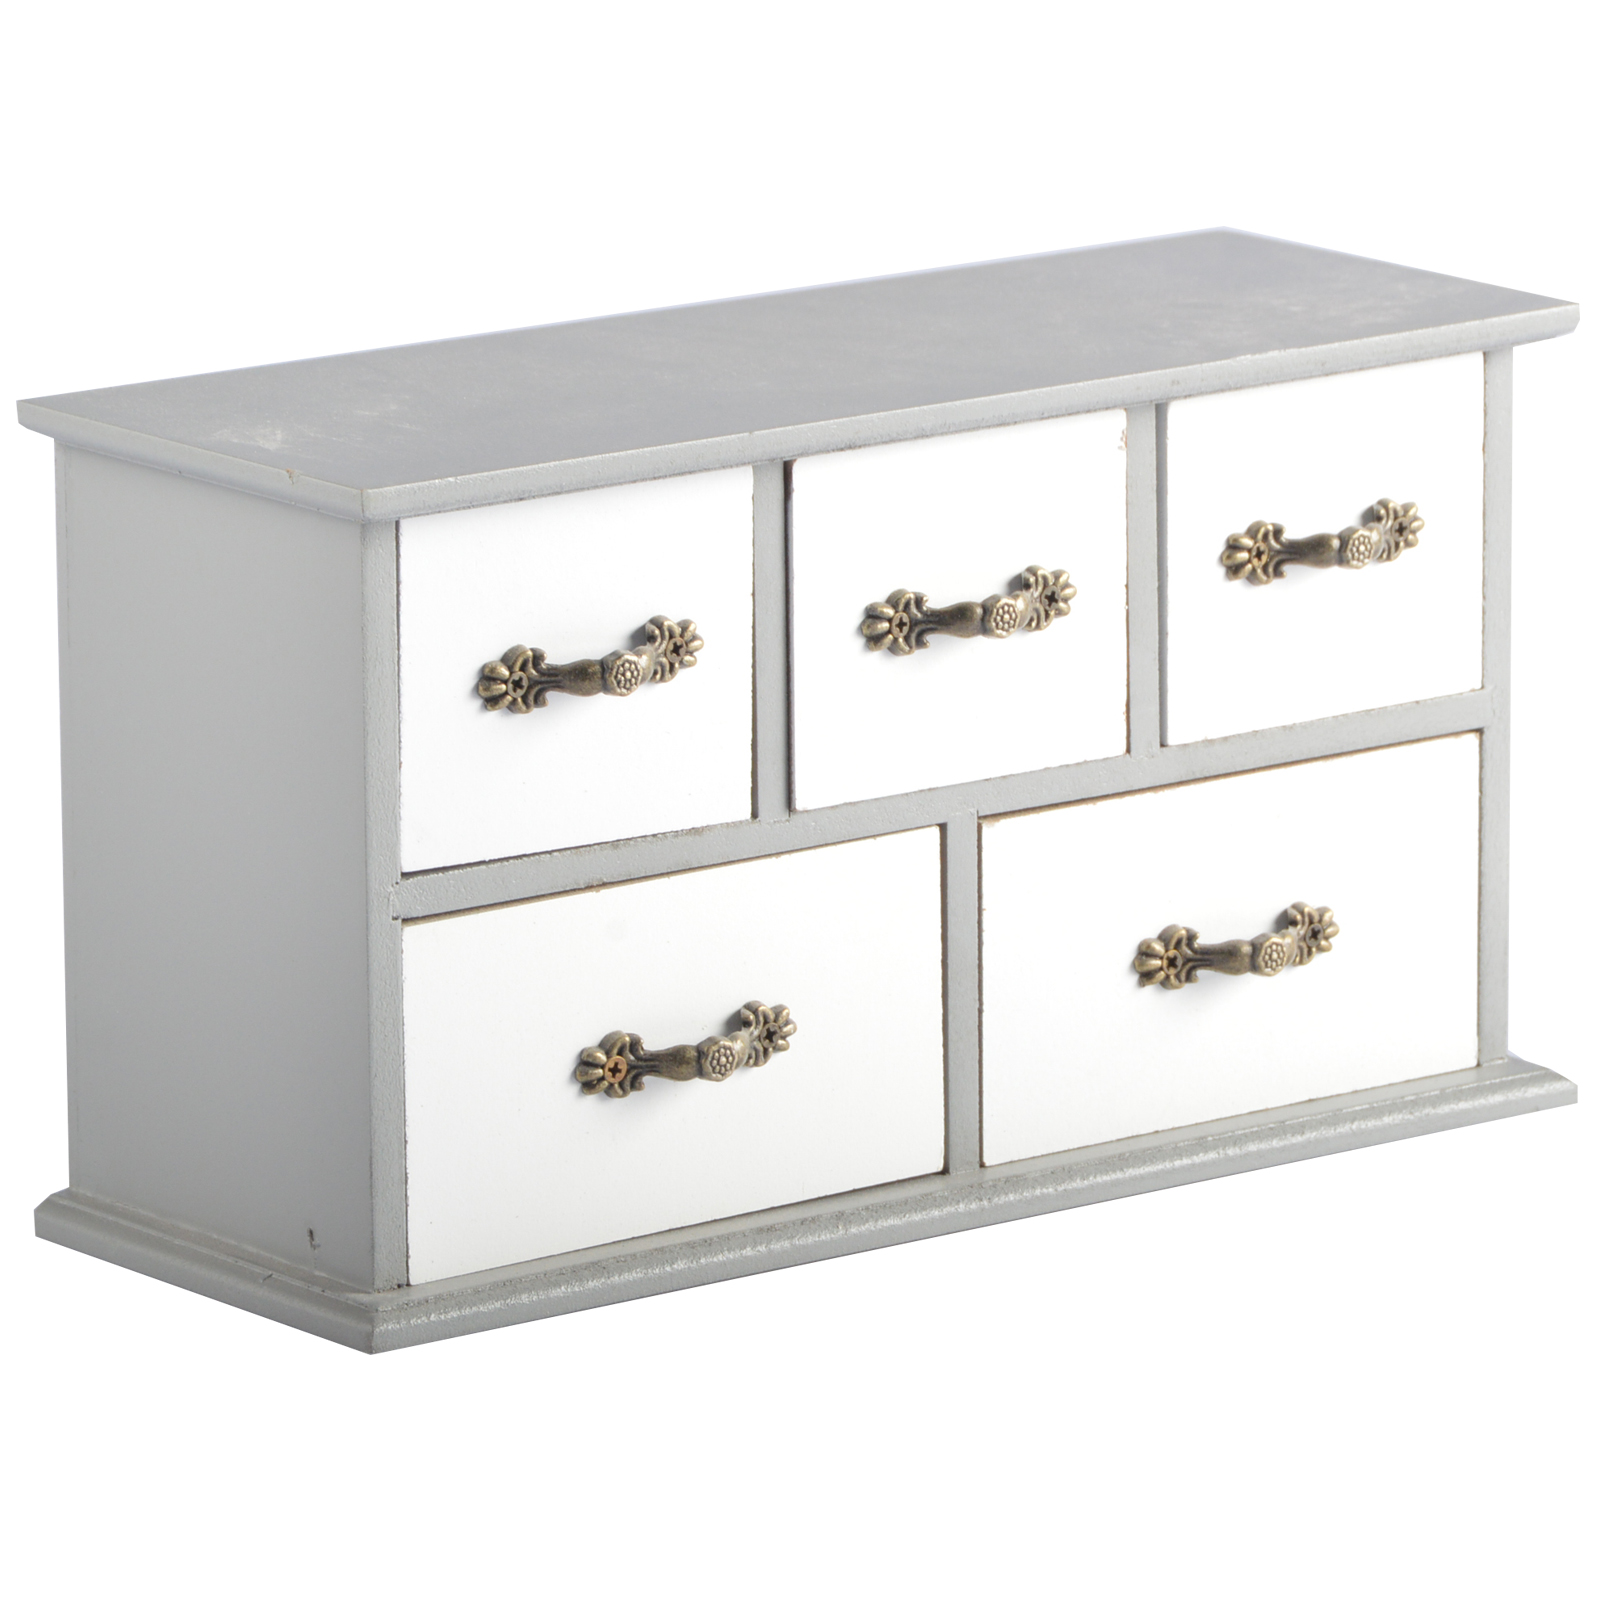 5 colours mini kommode metal handles 5 drawers wood. Black Bedroom Furniture Sets. Home Design Ideas